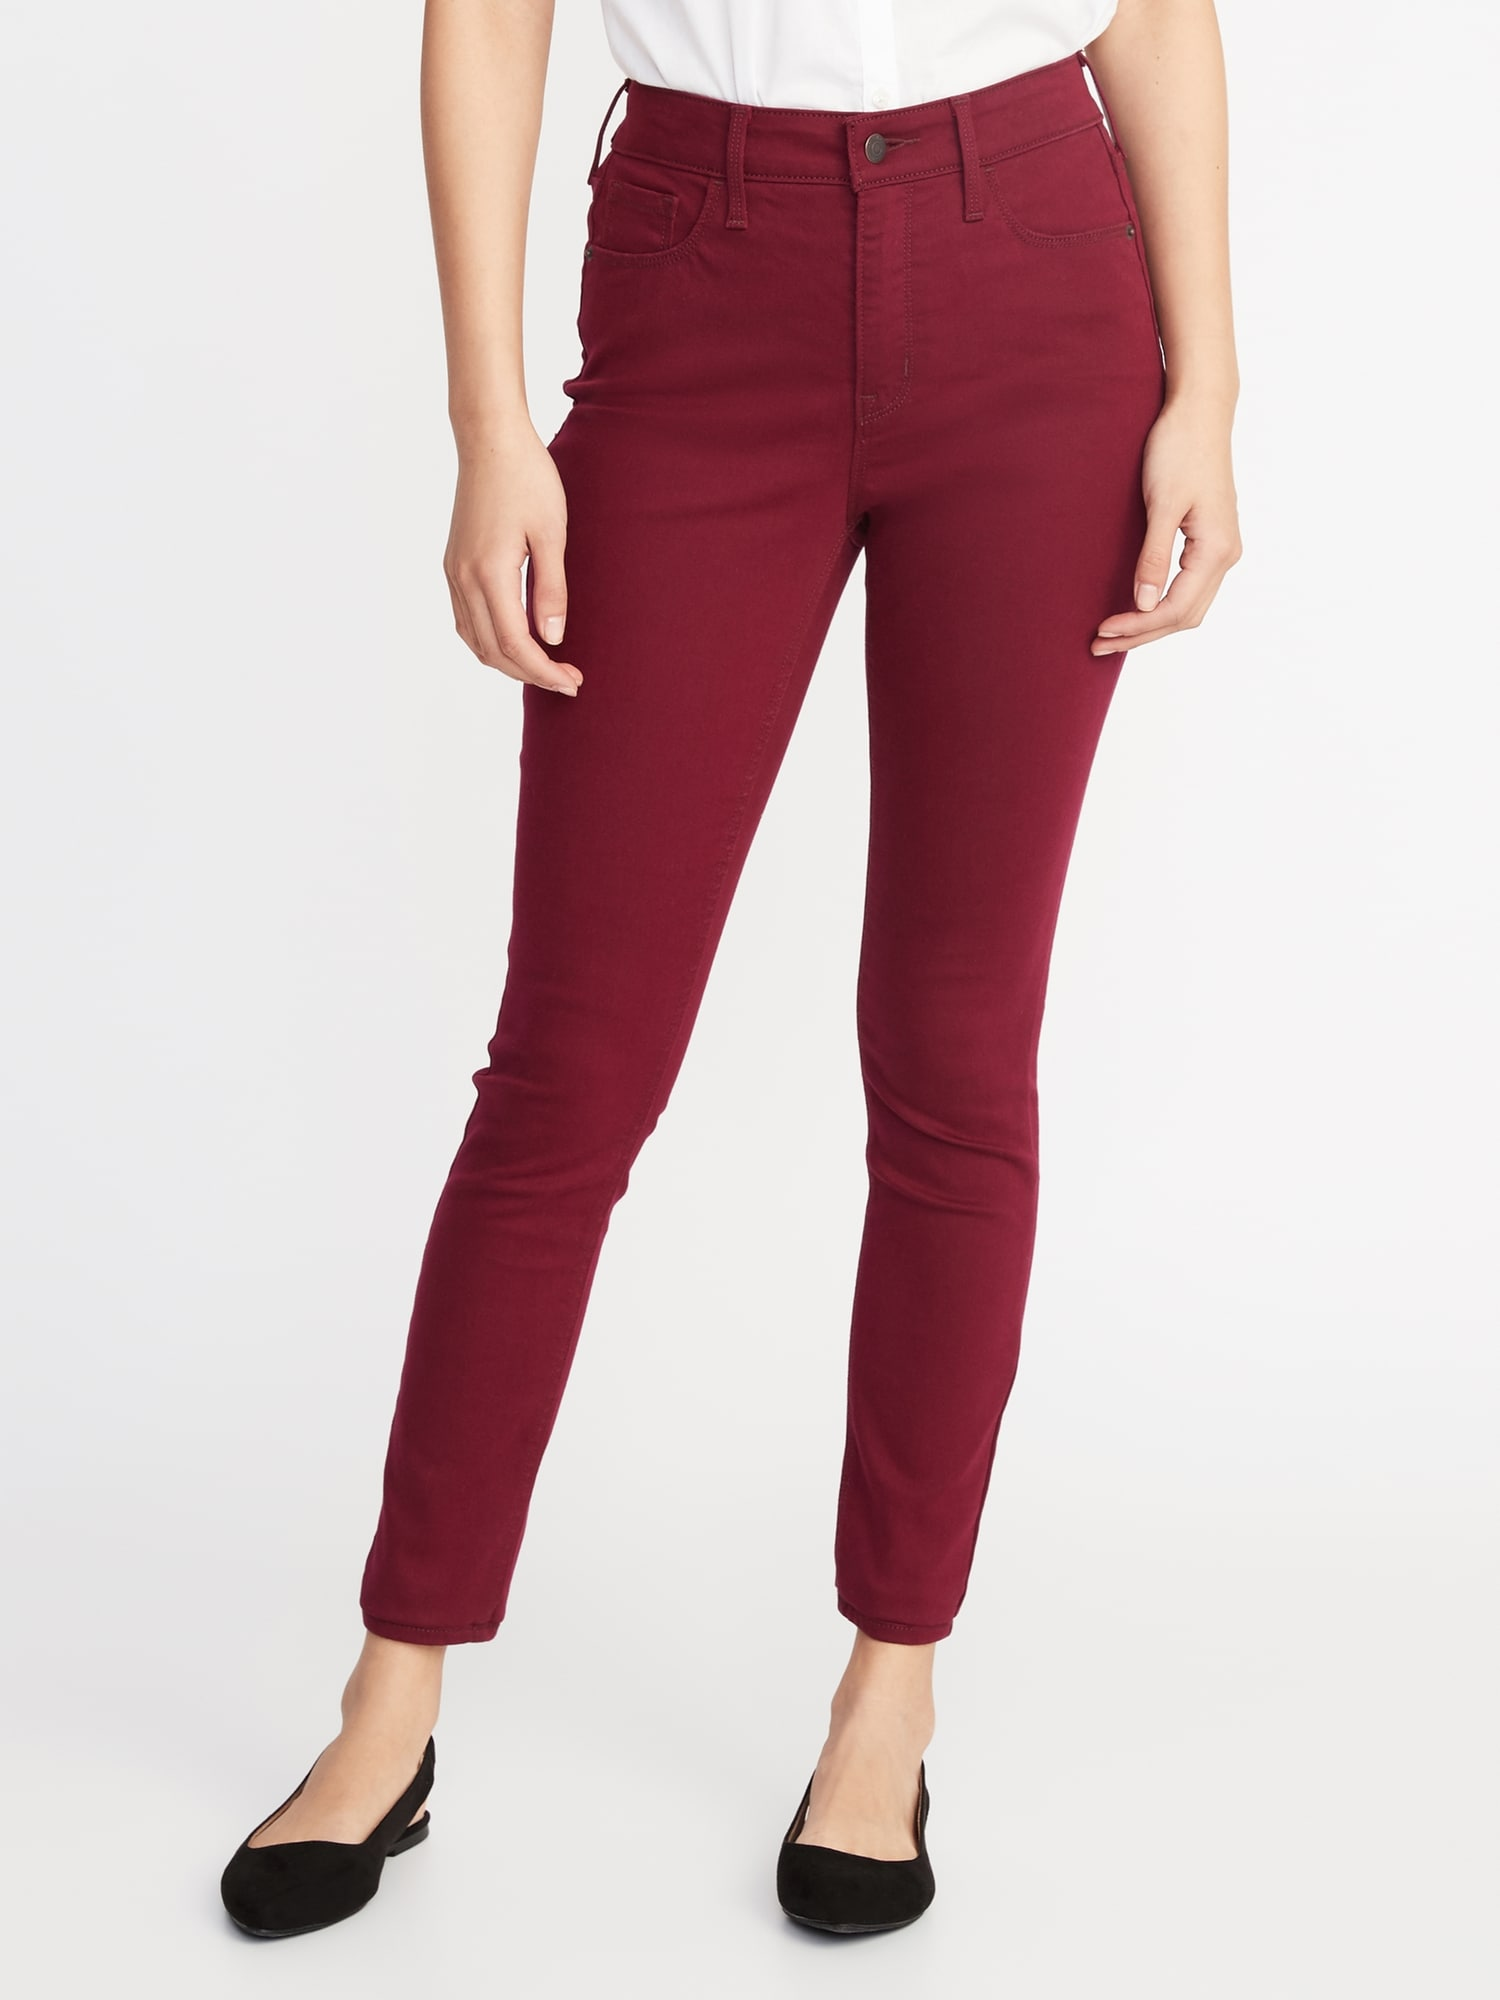 maroon color jeans